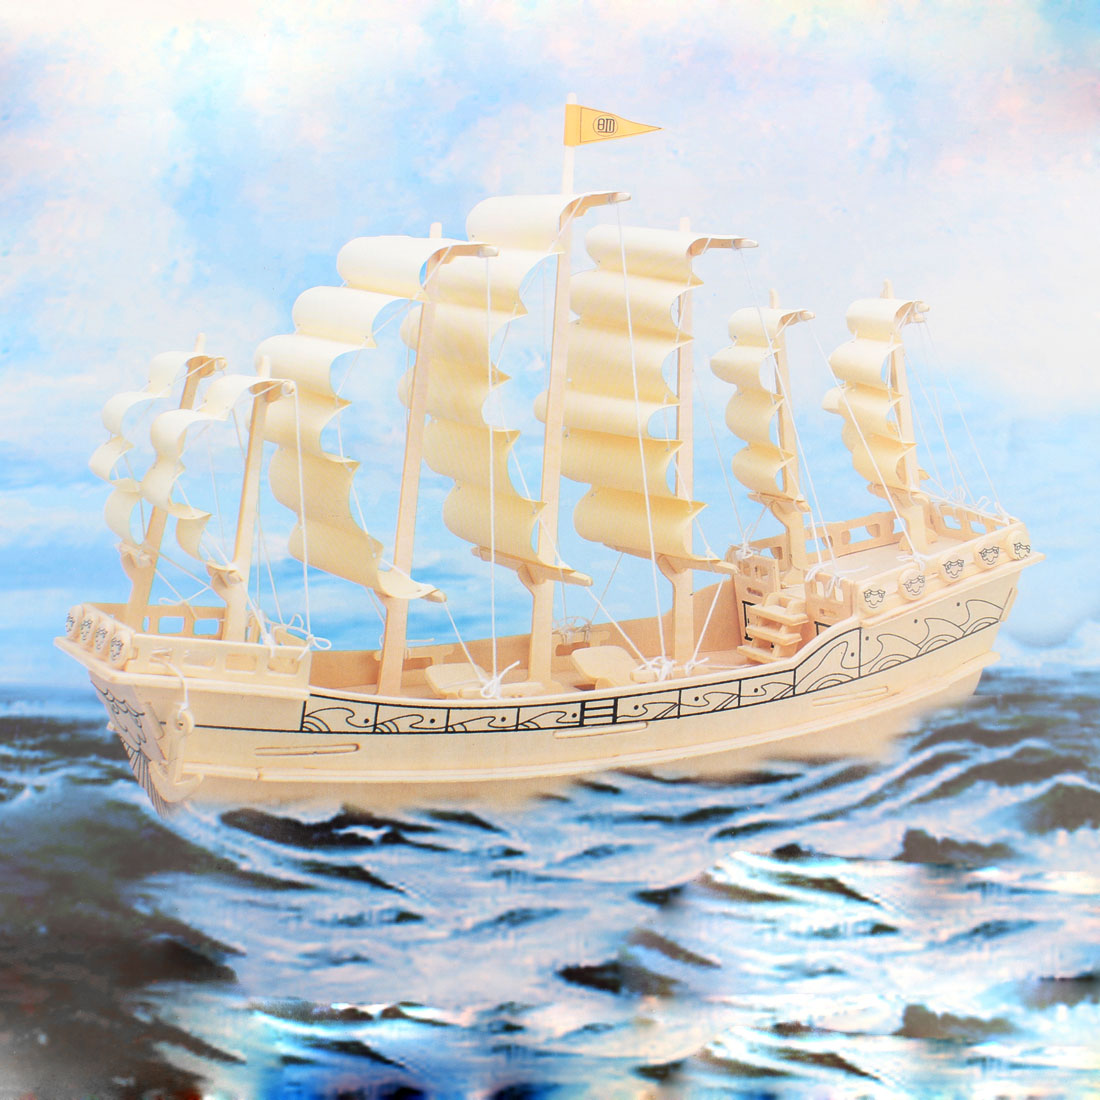 Cubic Ancient Style Sailboat in Ming Dynasty Wooden Puzzle Toy for Kids